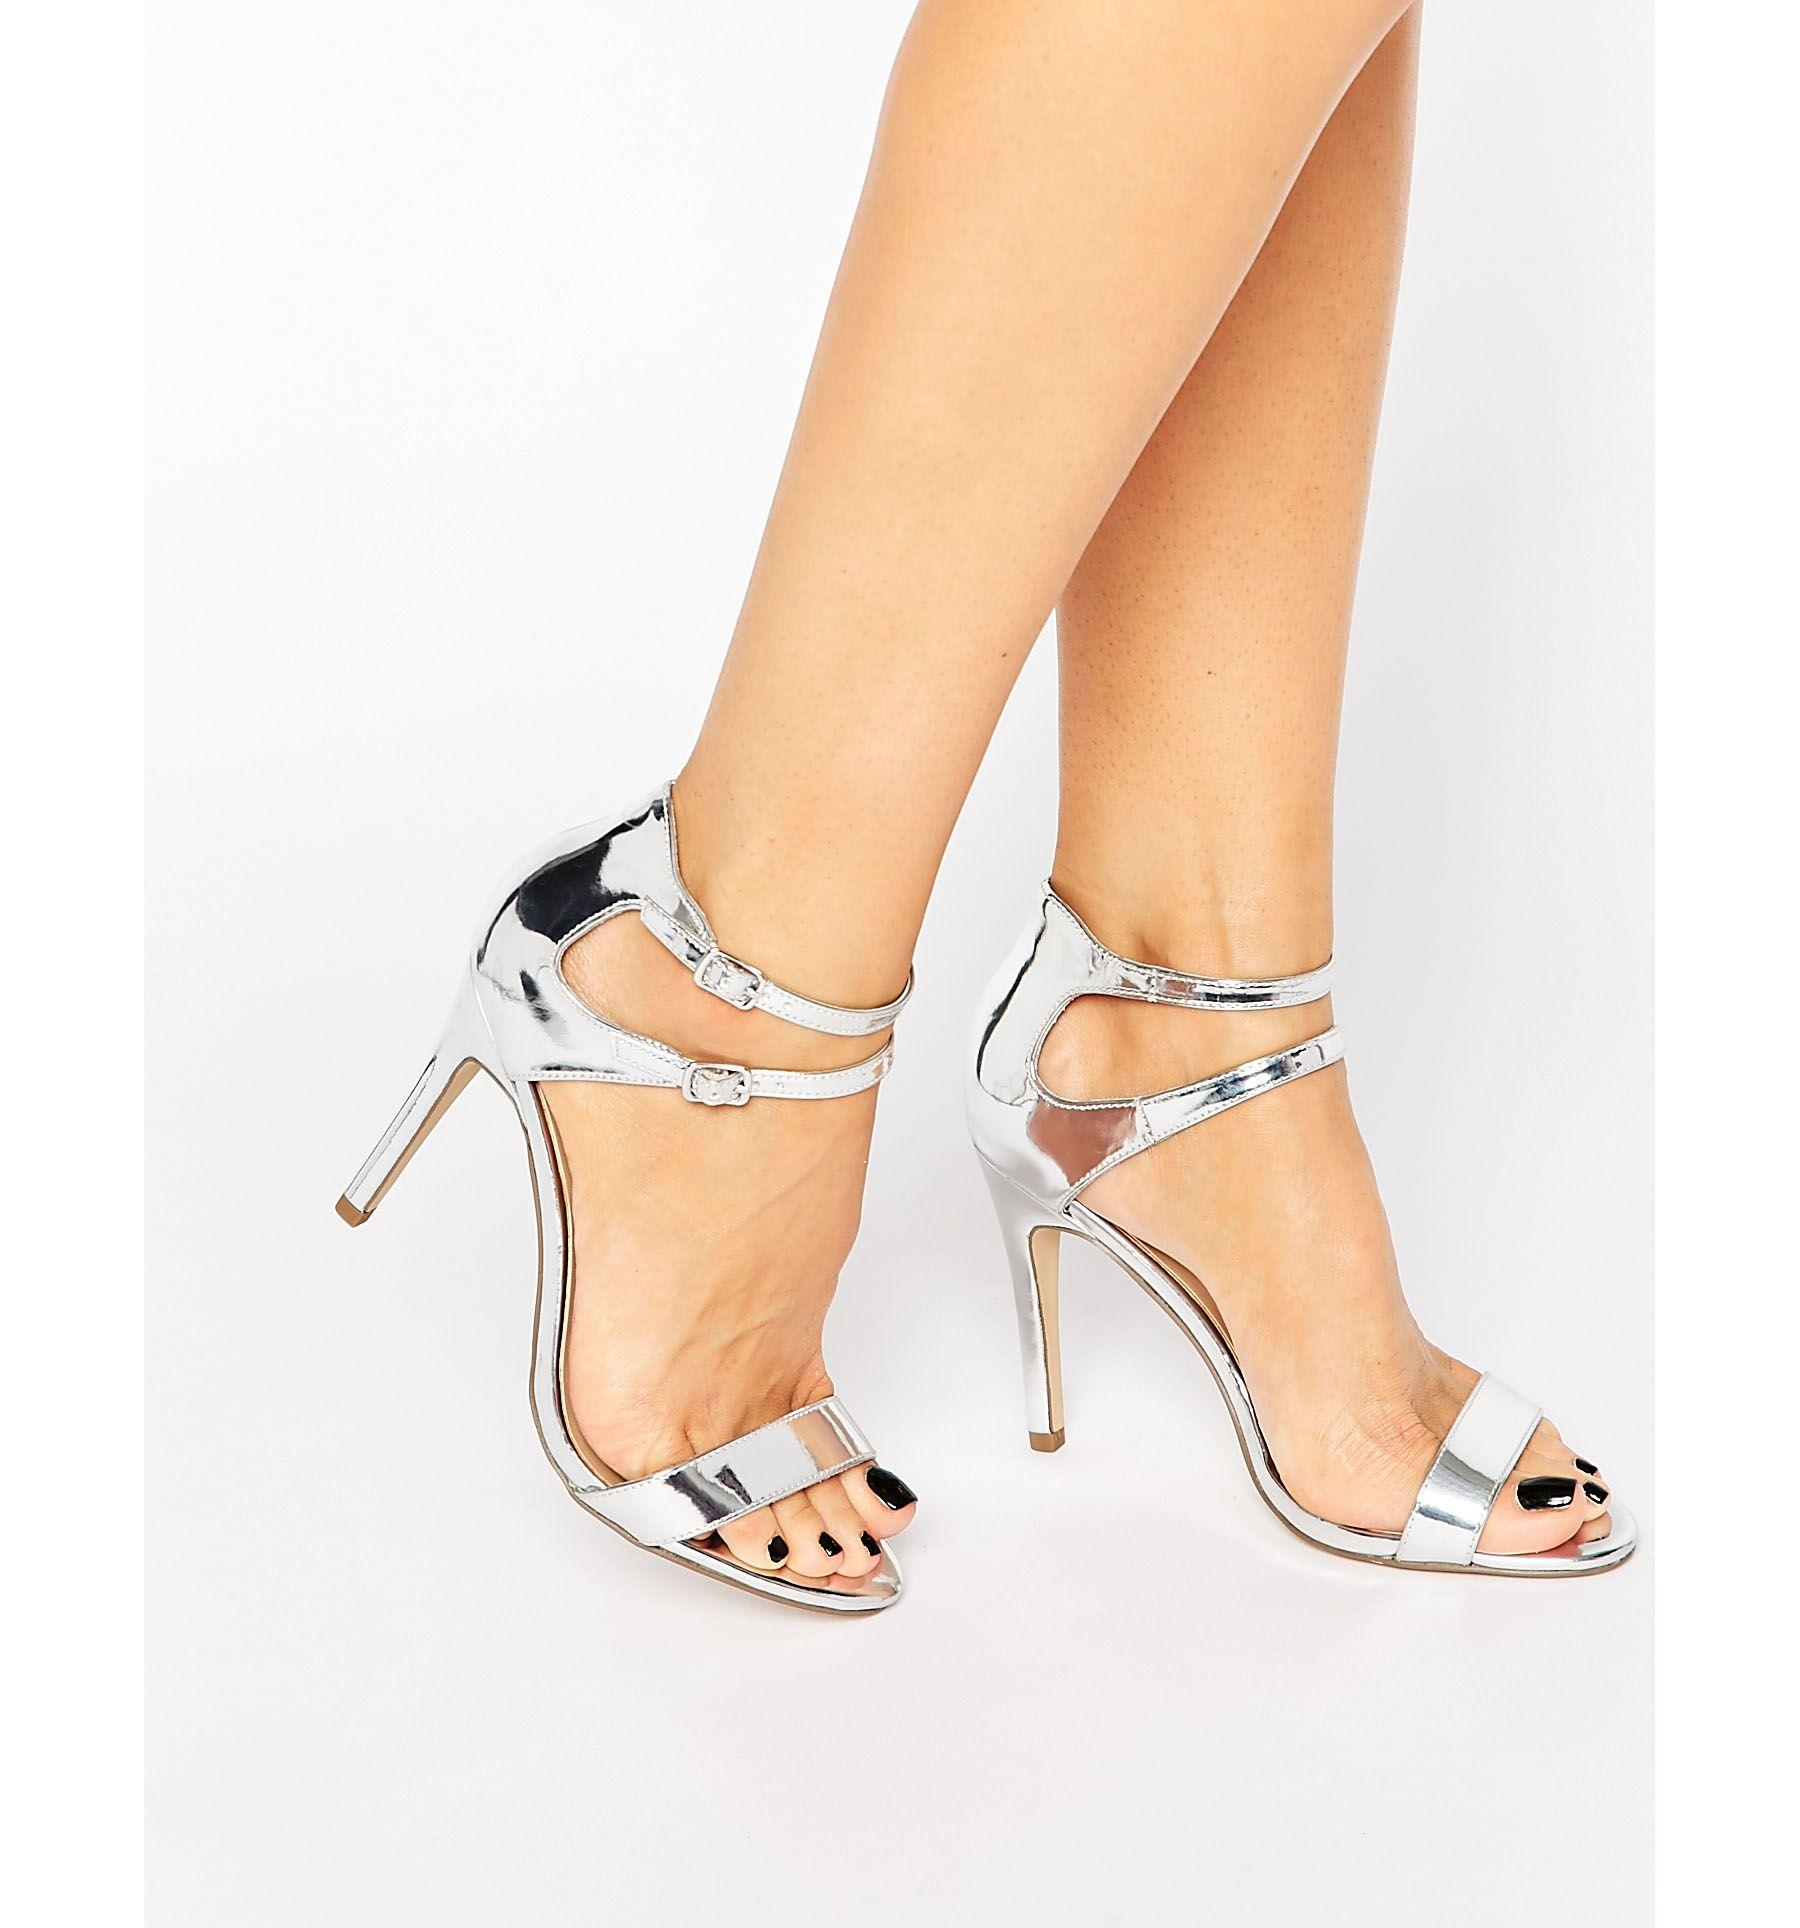 New look Strappy Metallic Heeled Sandal in Metallic